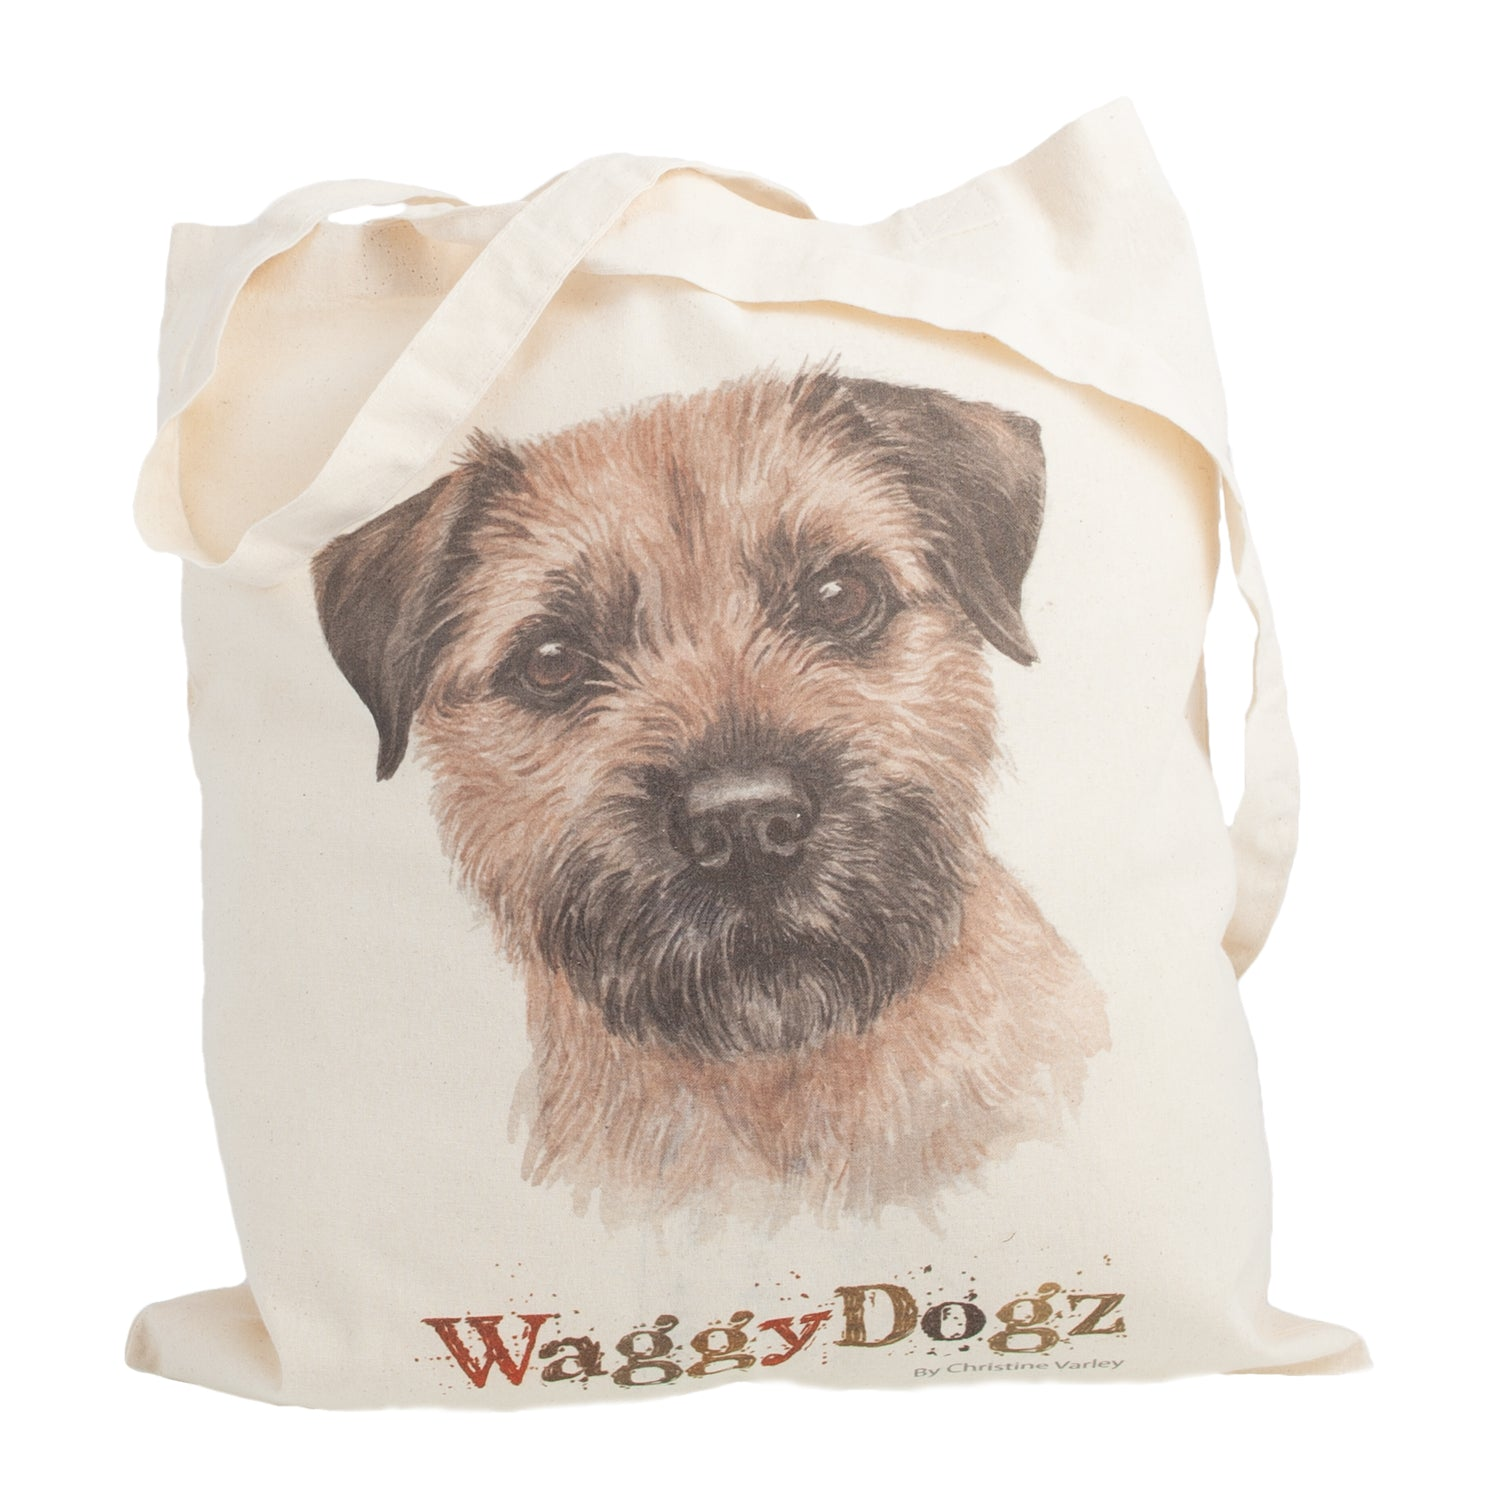 Dog Lover Gifts available at Dog Krazy Gifts. Border Terrier Tote Bag, part of our Christine Varley collection – available at www.dogkrazygifts.co.uk